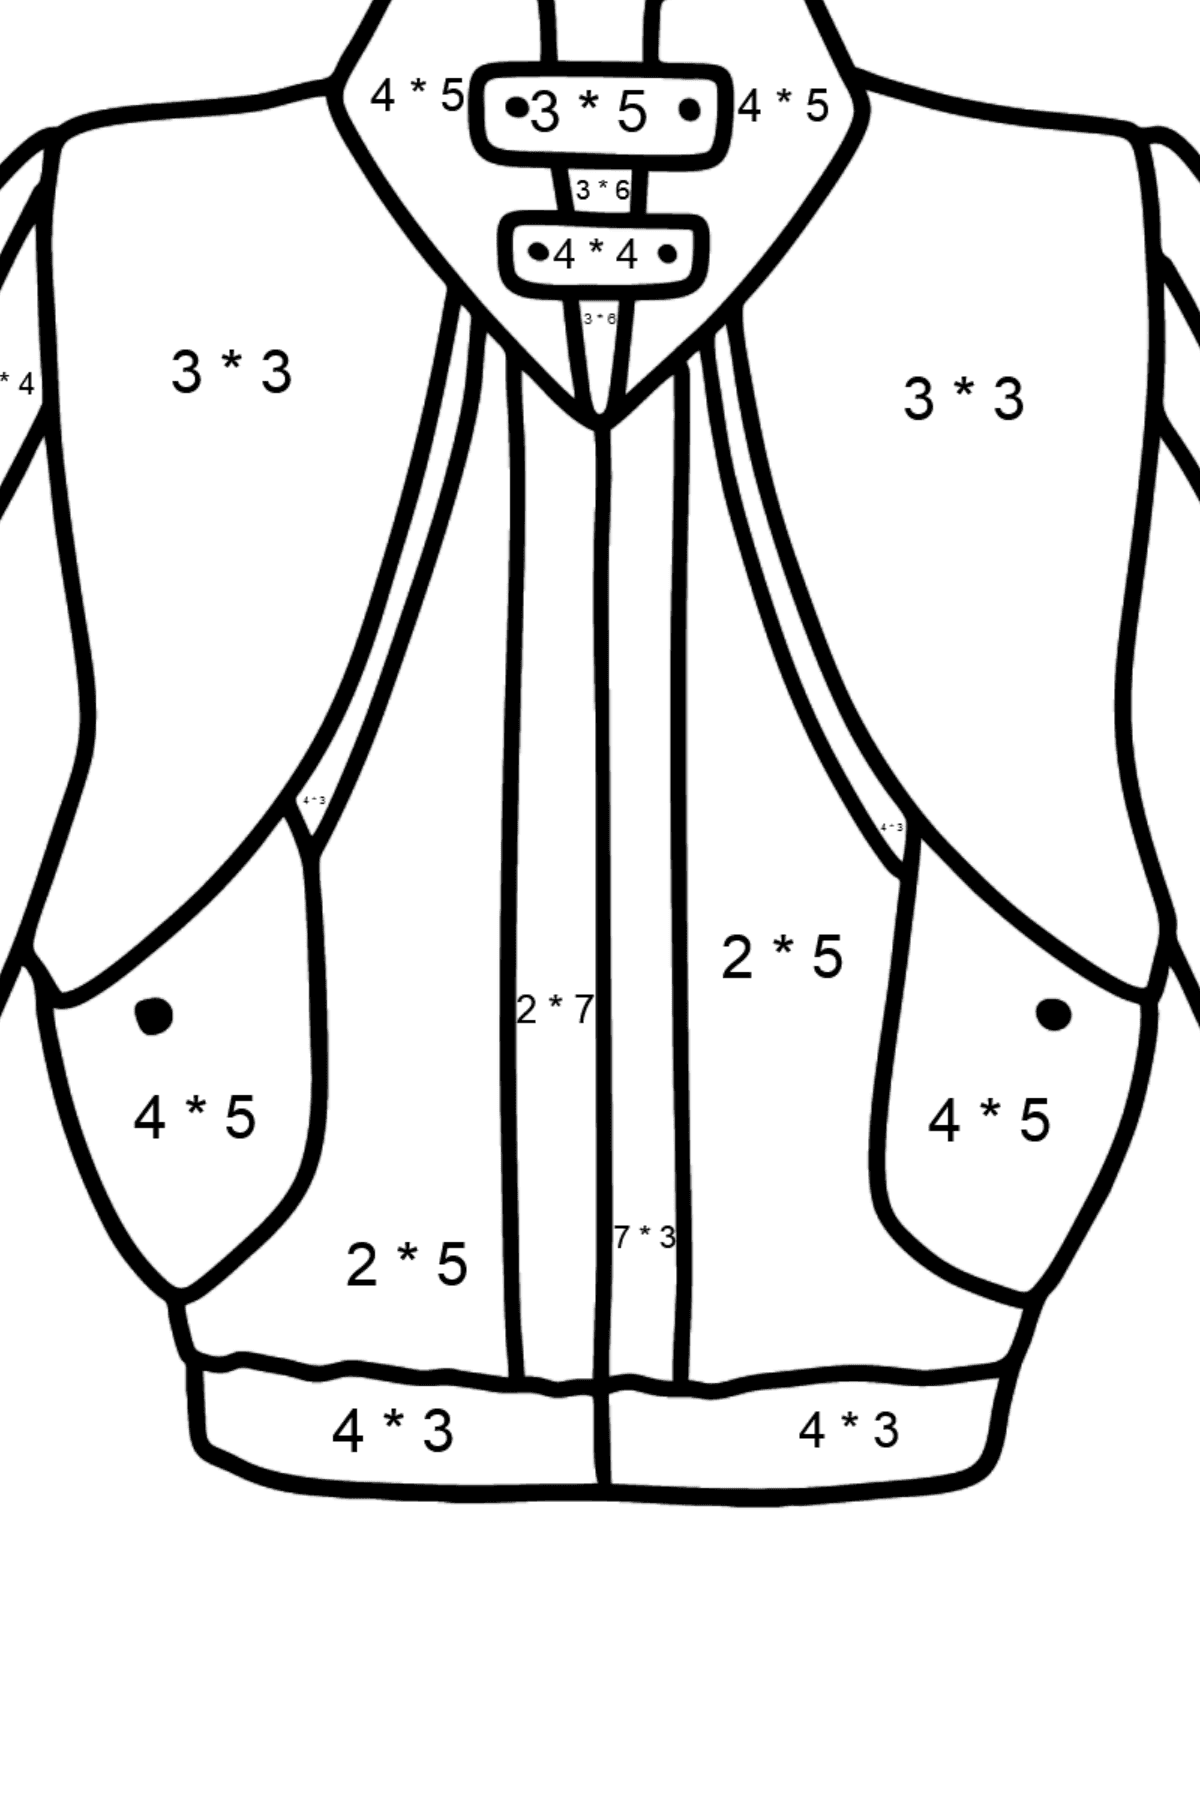 Jacket coloring page - Math Coloring - Multiplication for Kids